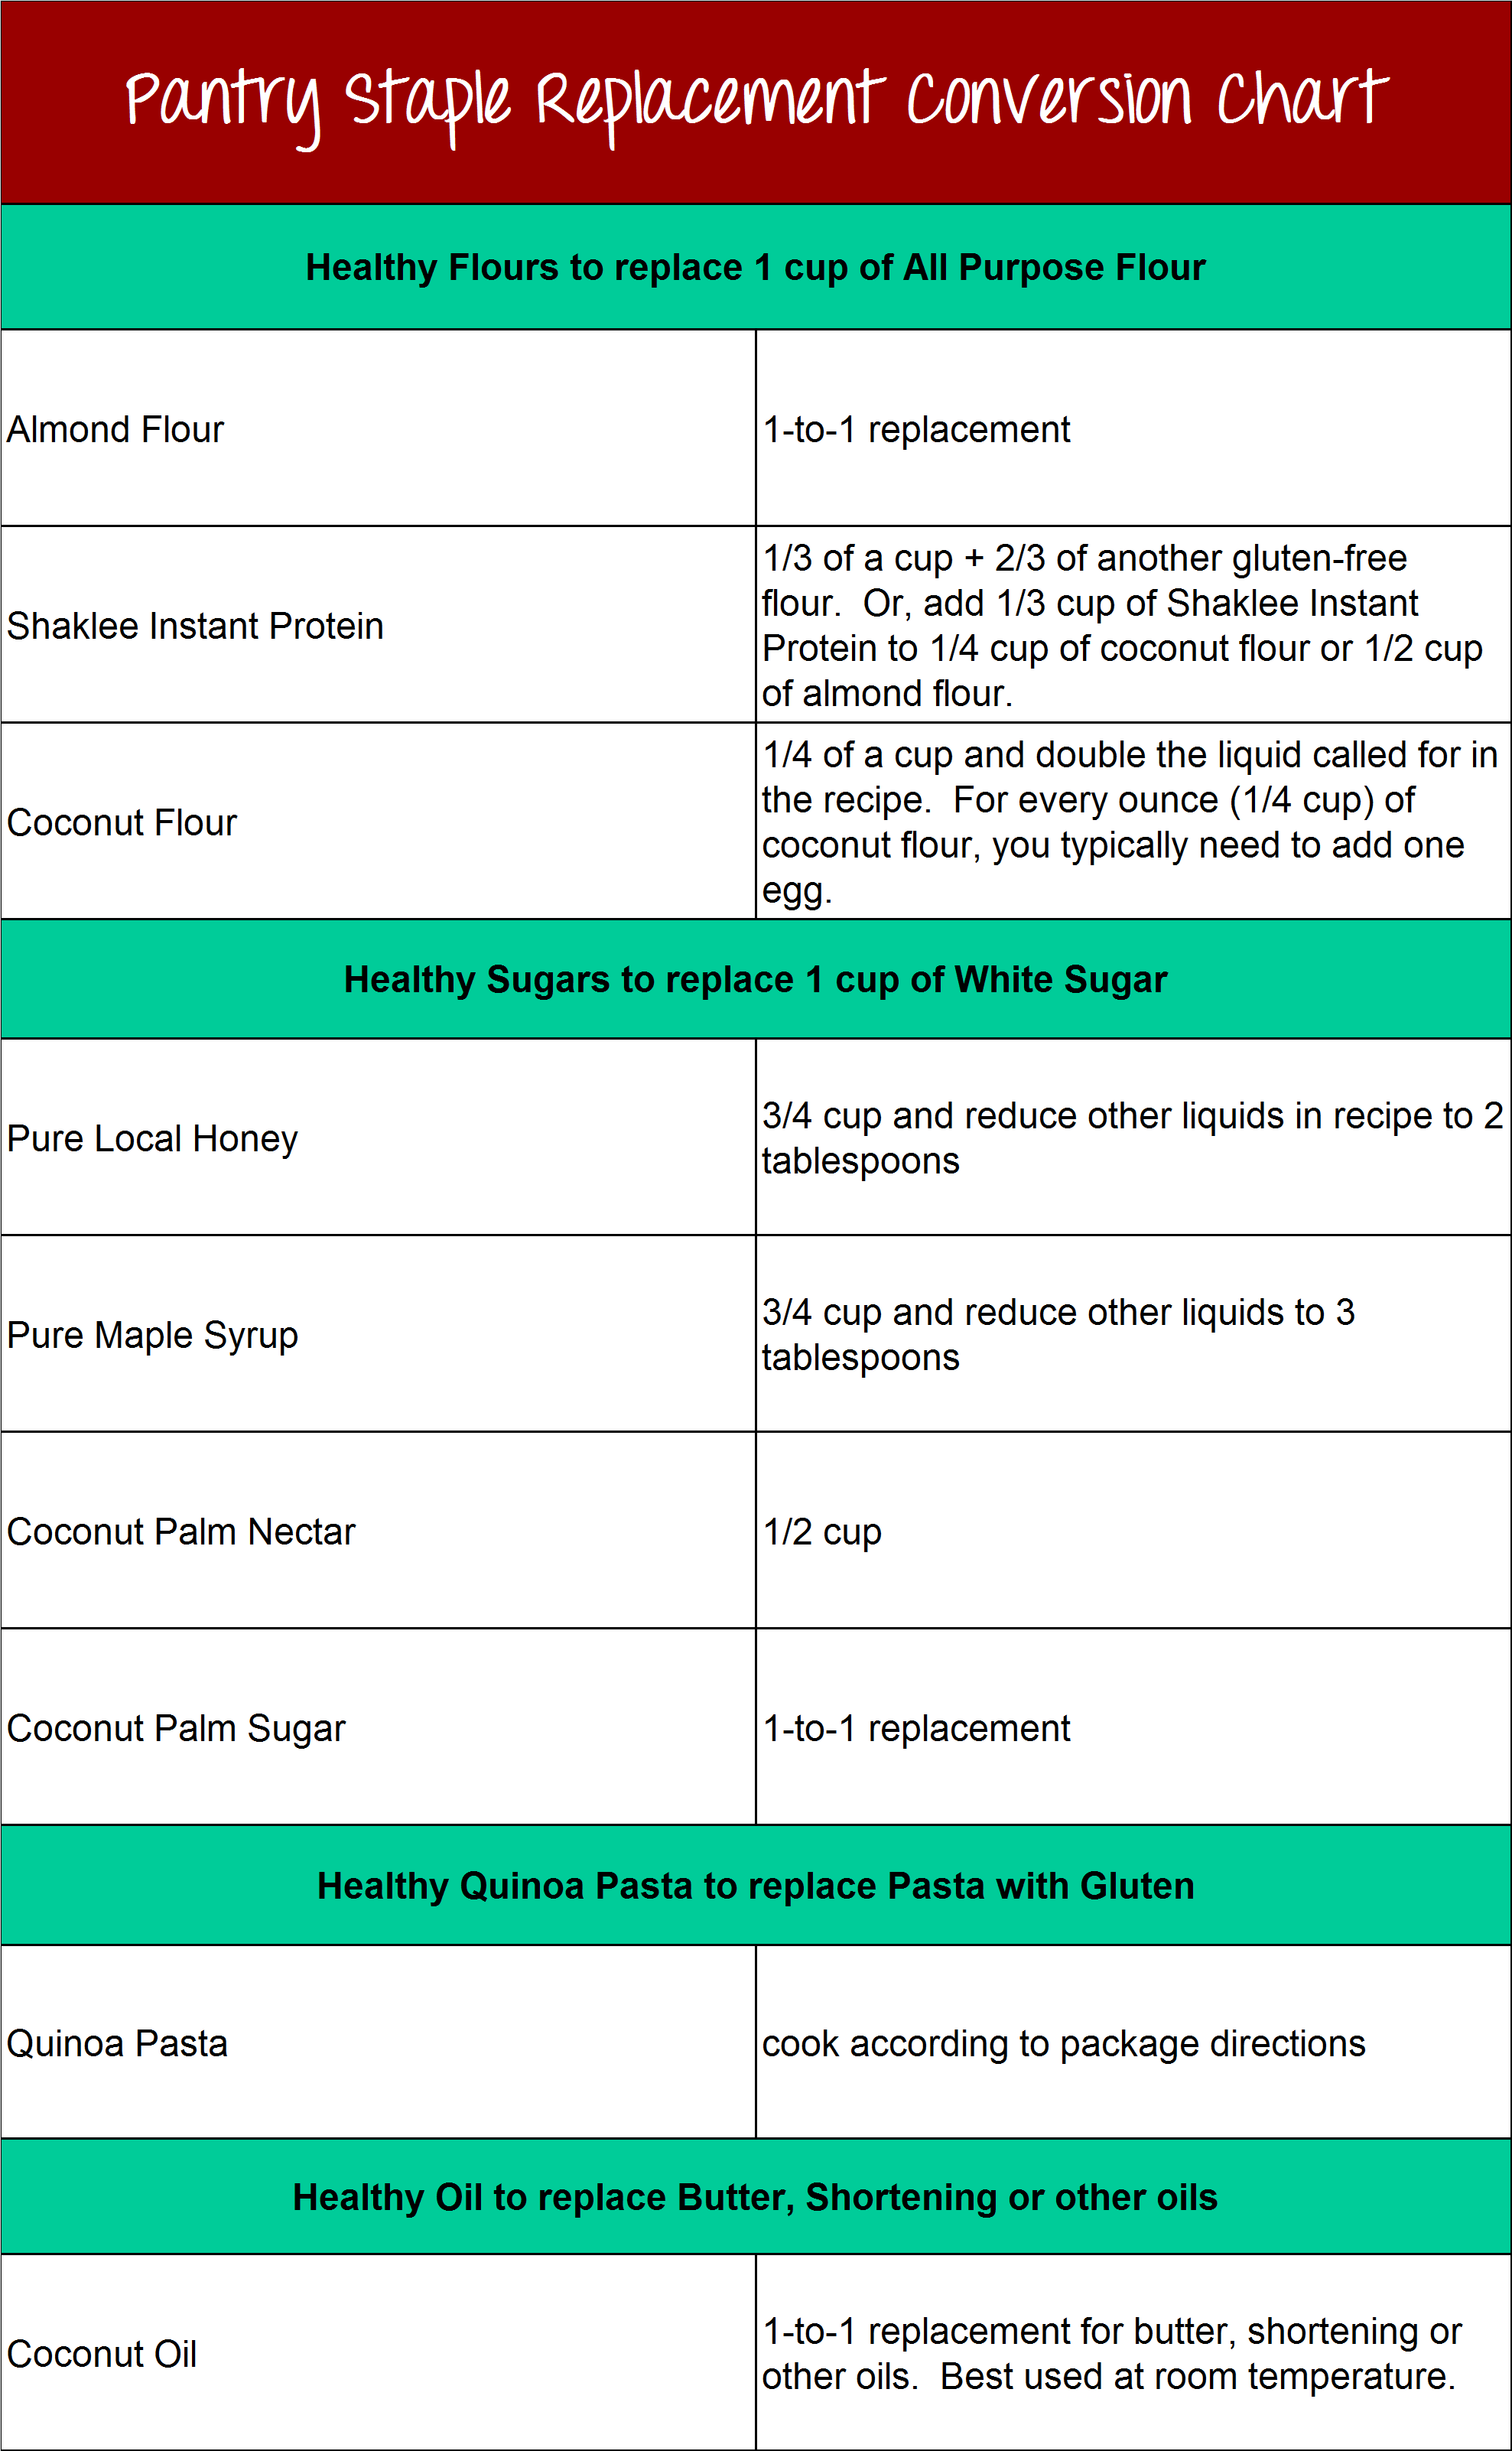 Powerful pantry swap outs for 2014 360 your life with brooke thomas pantry staple conversion chart2 pantry staple conversion chart nvjuhfo Images